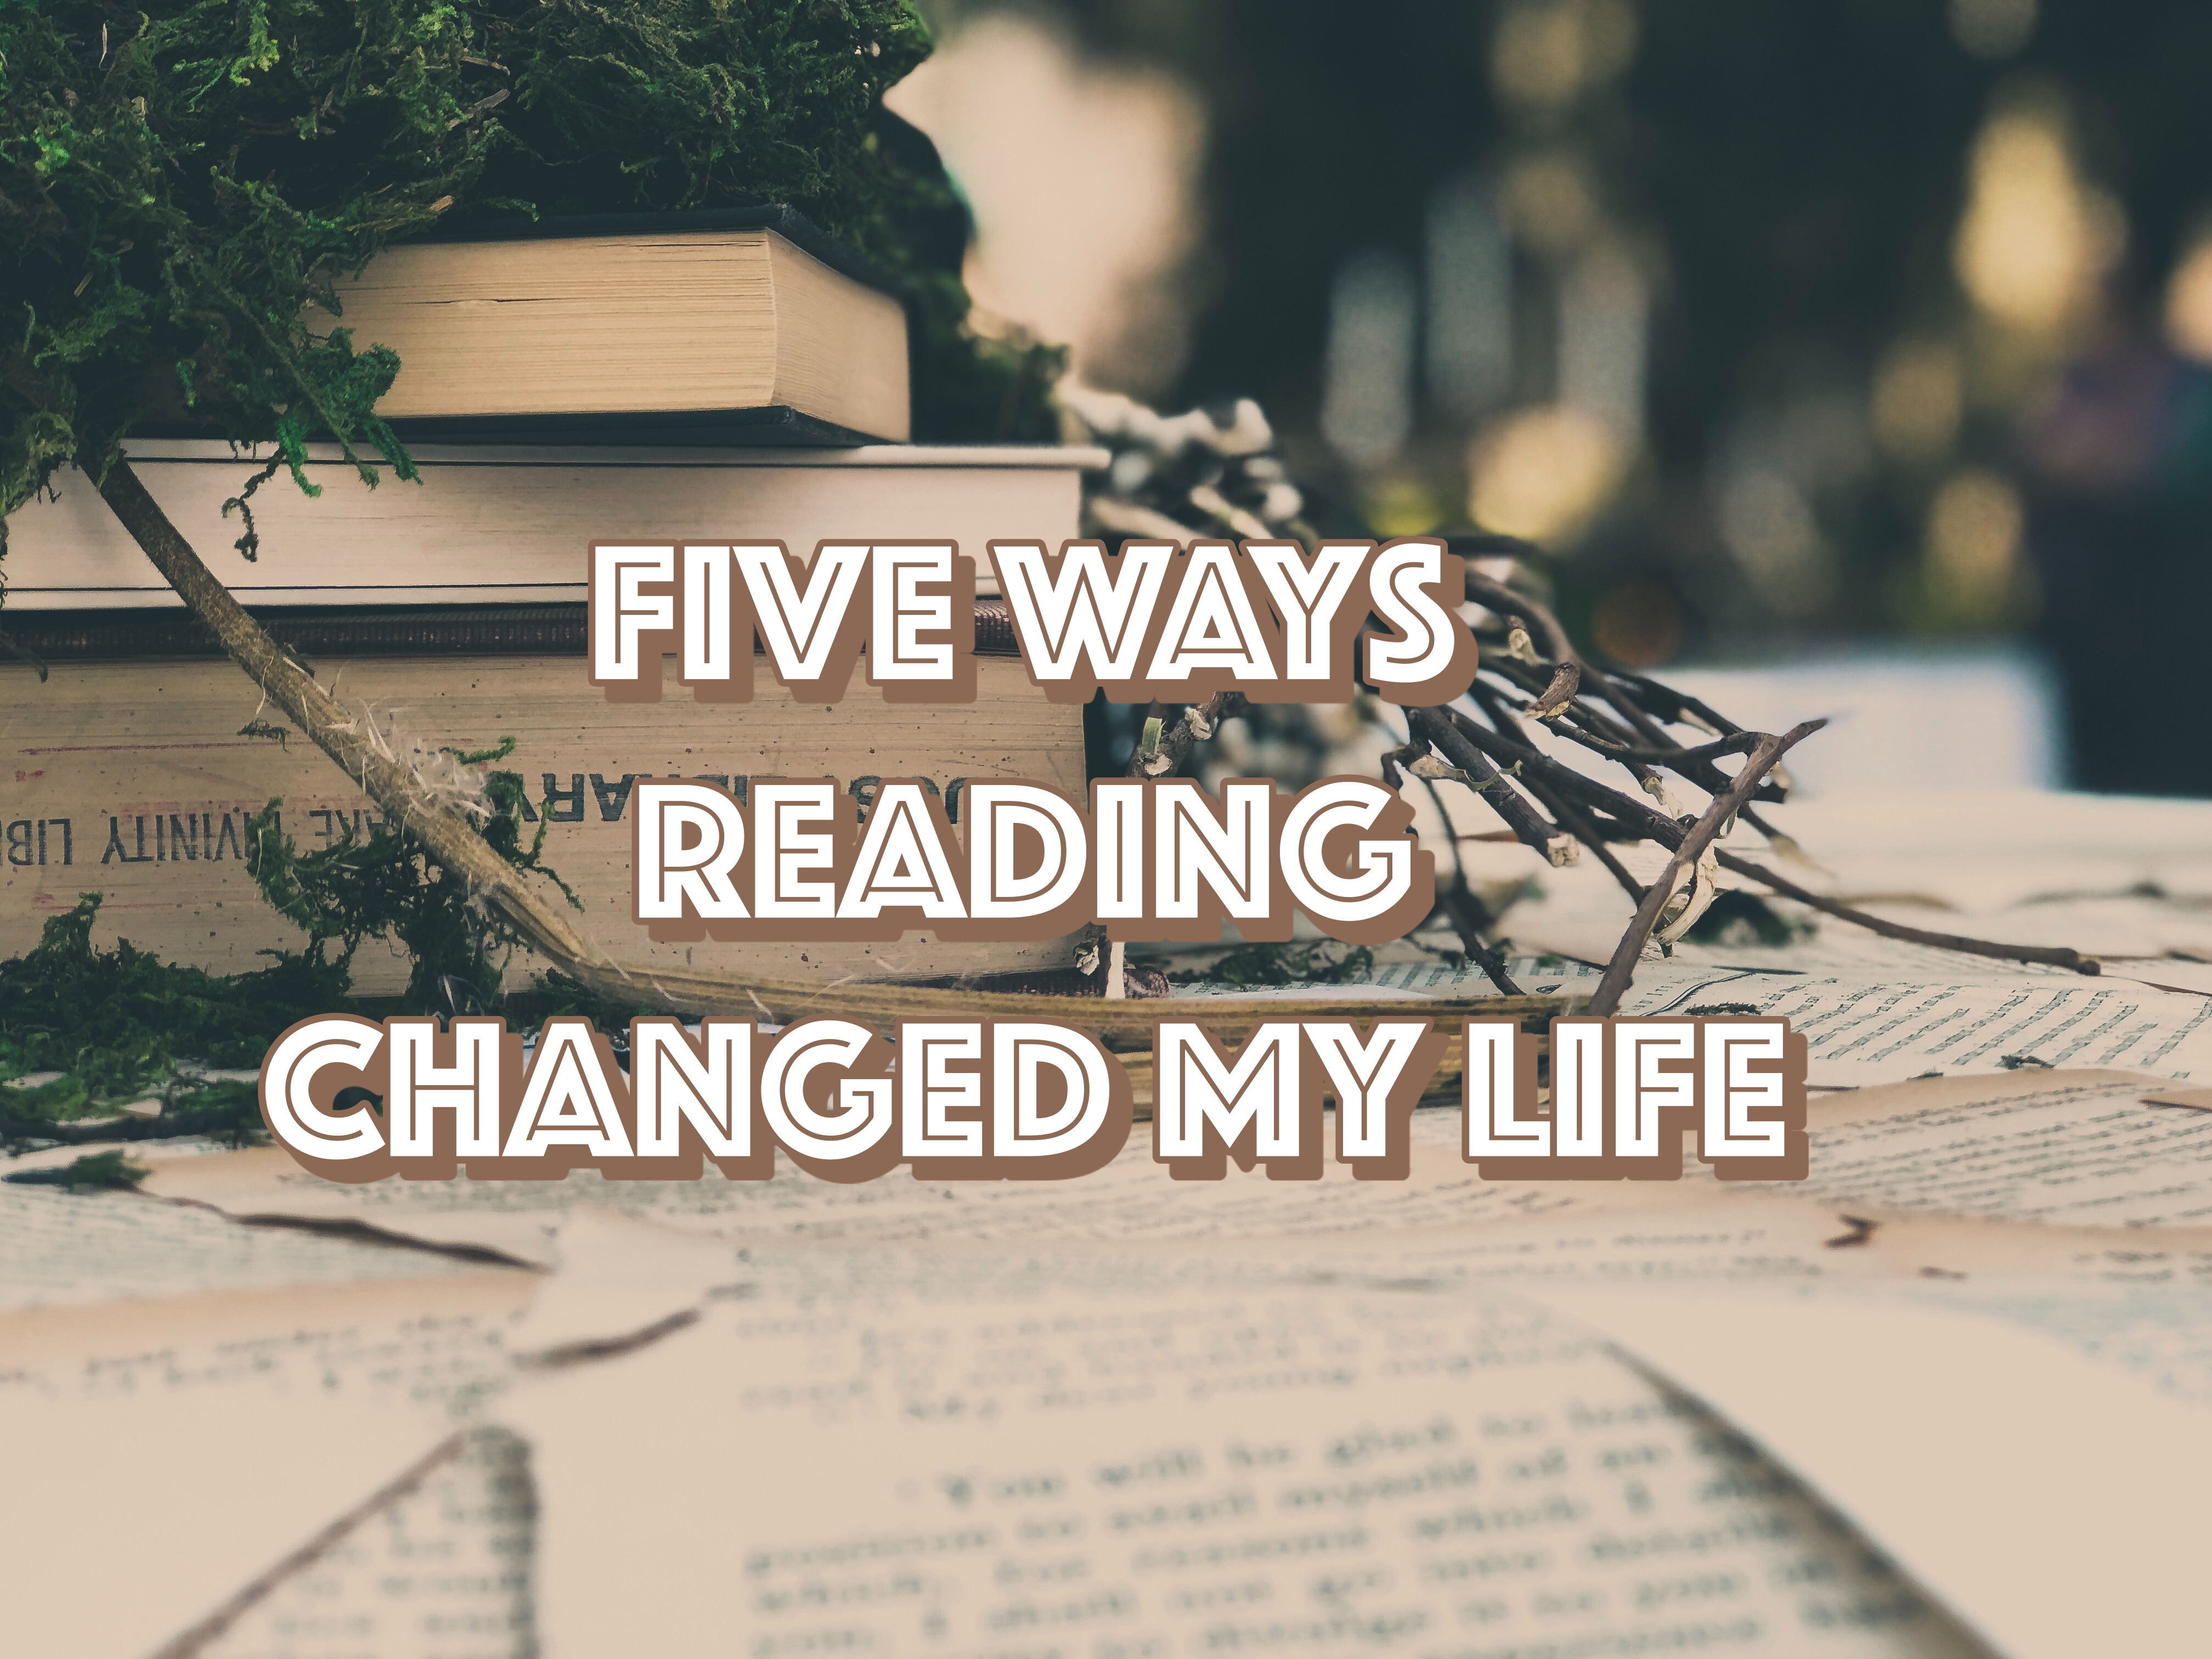 Five ways reading changed my life